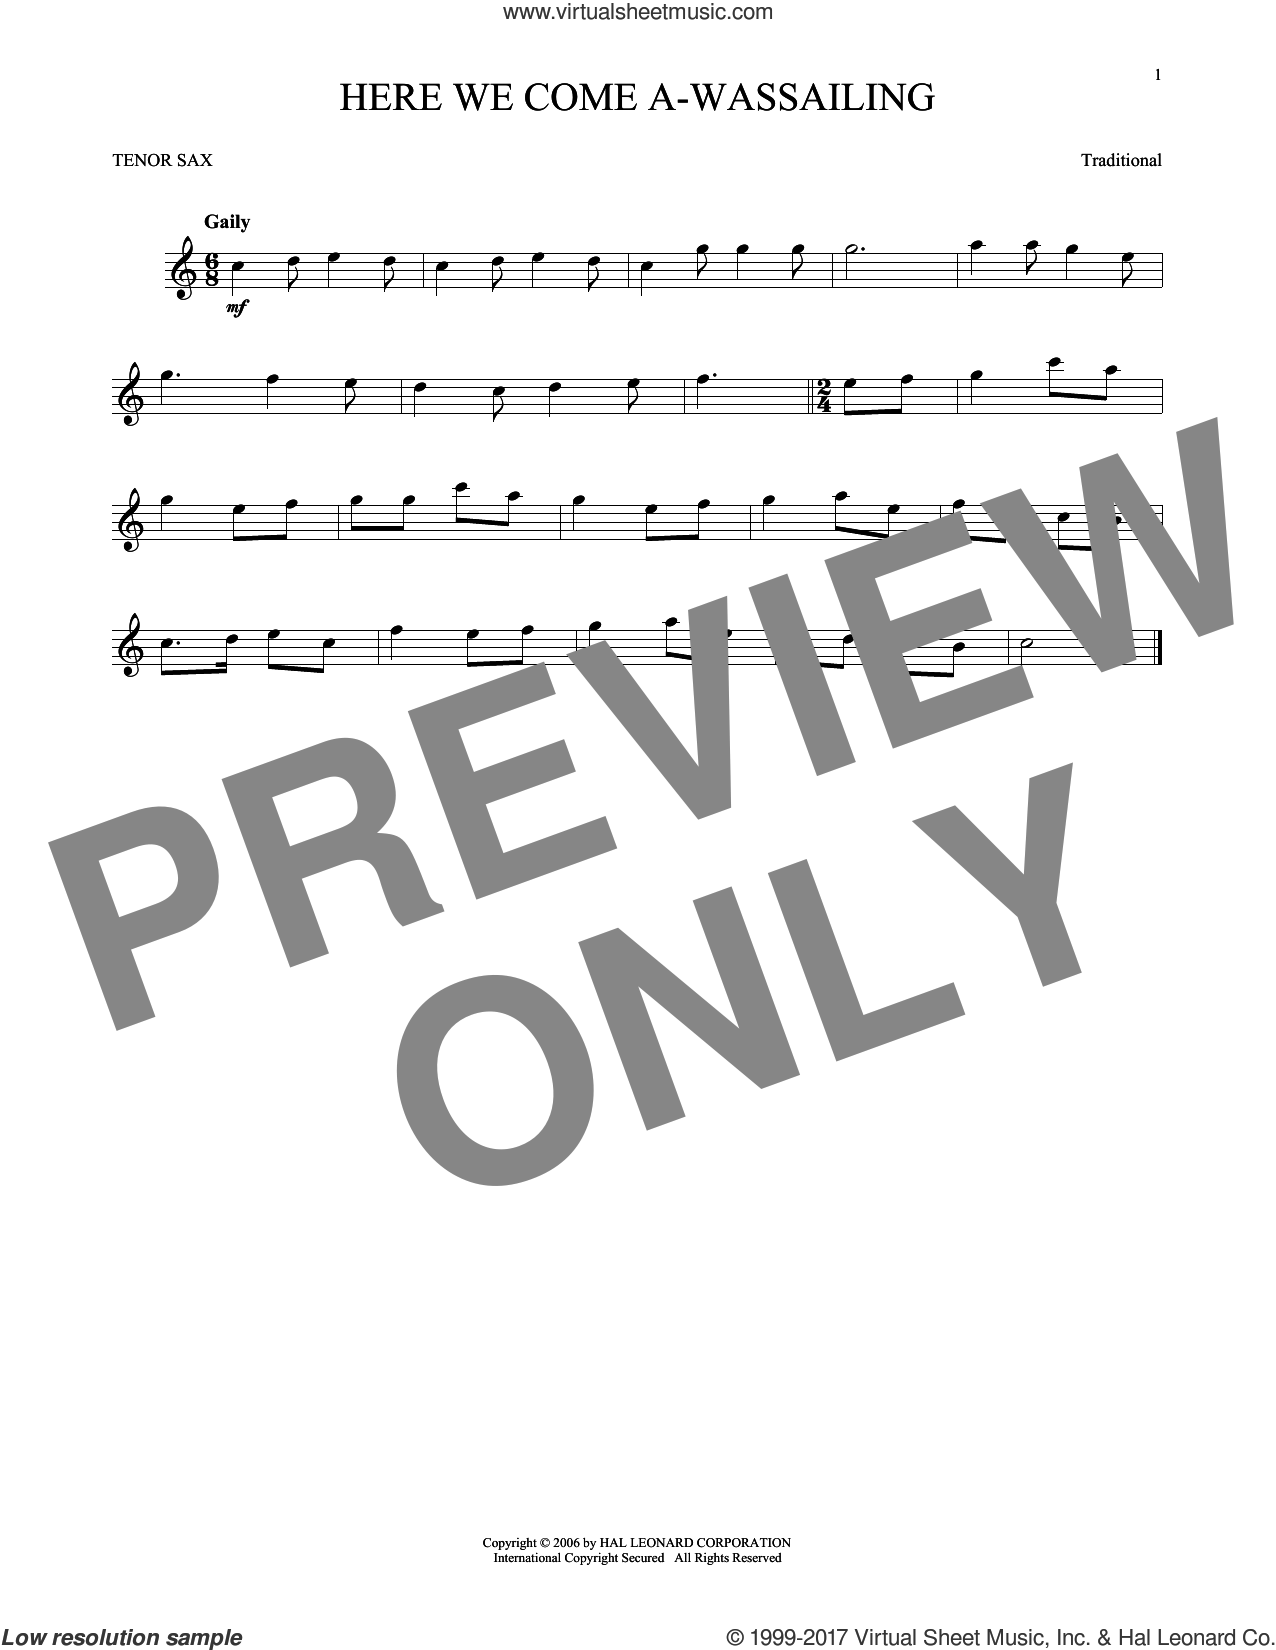 Here We Come A-Wassailing sheet music for tenor saxophone solo, intermediate skill level